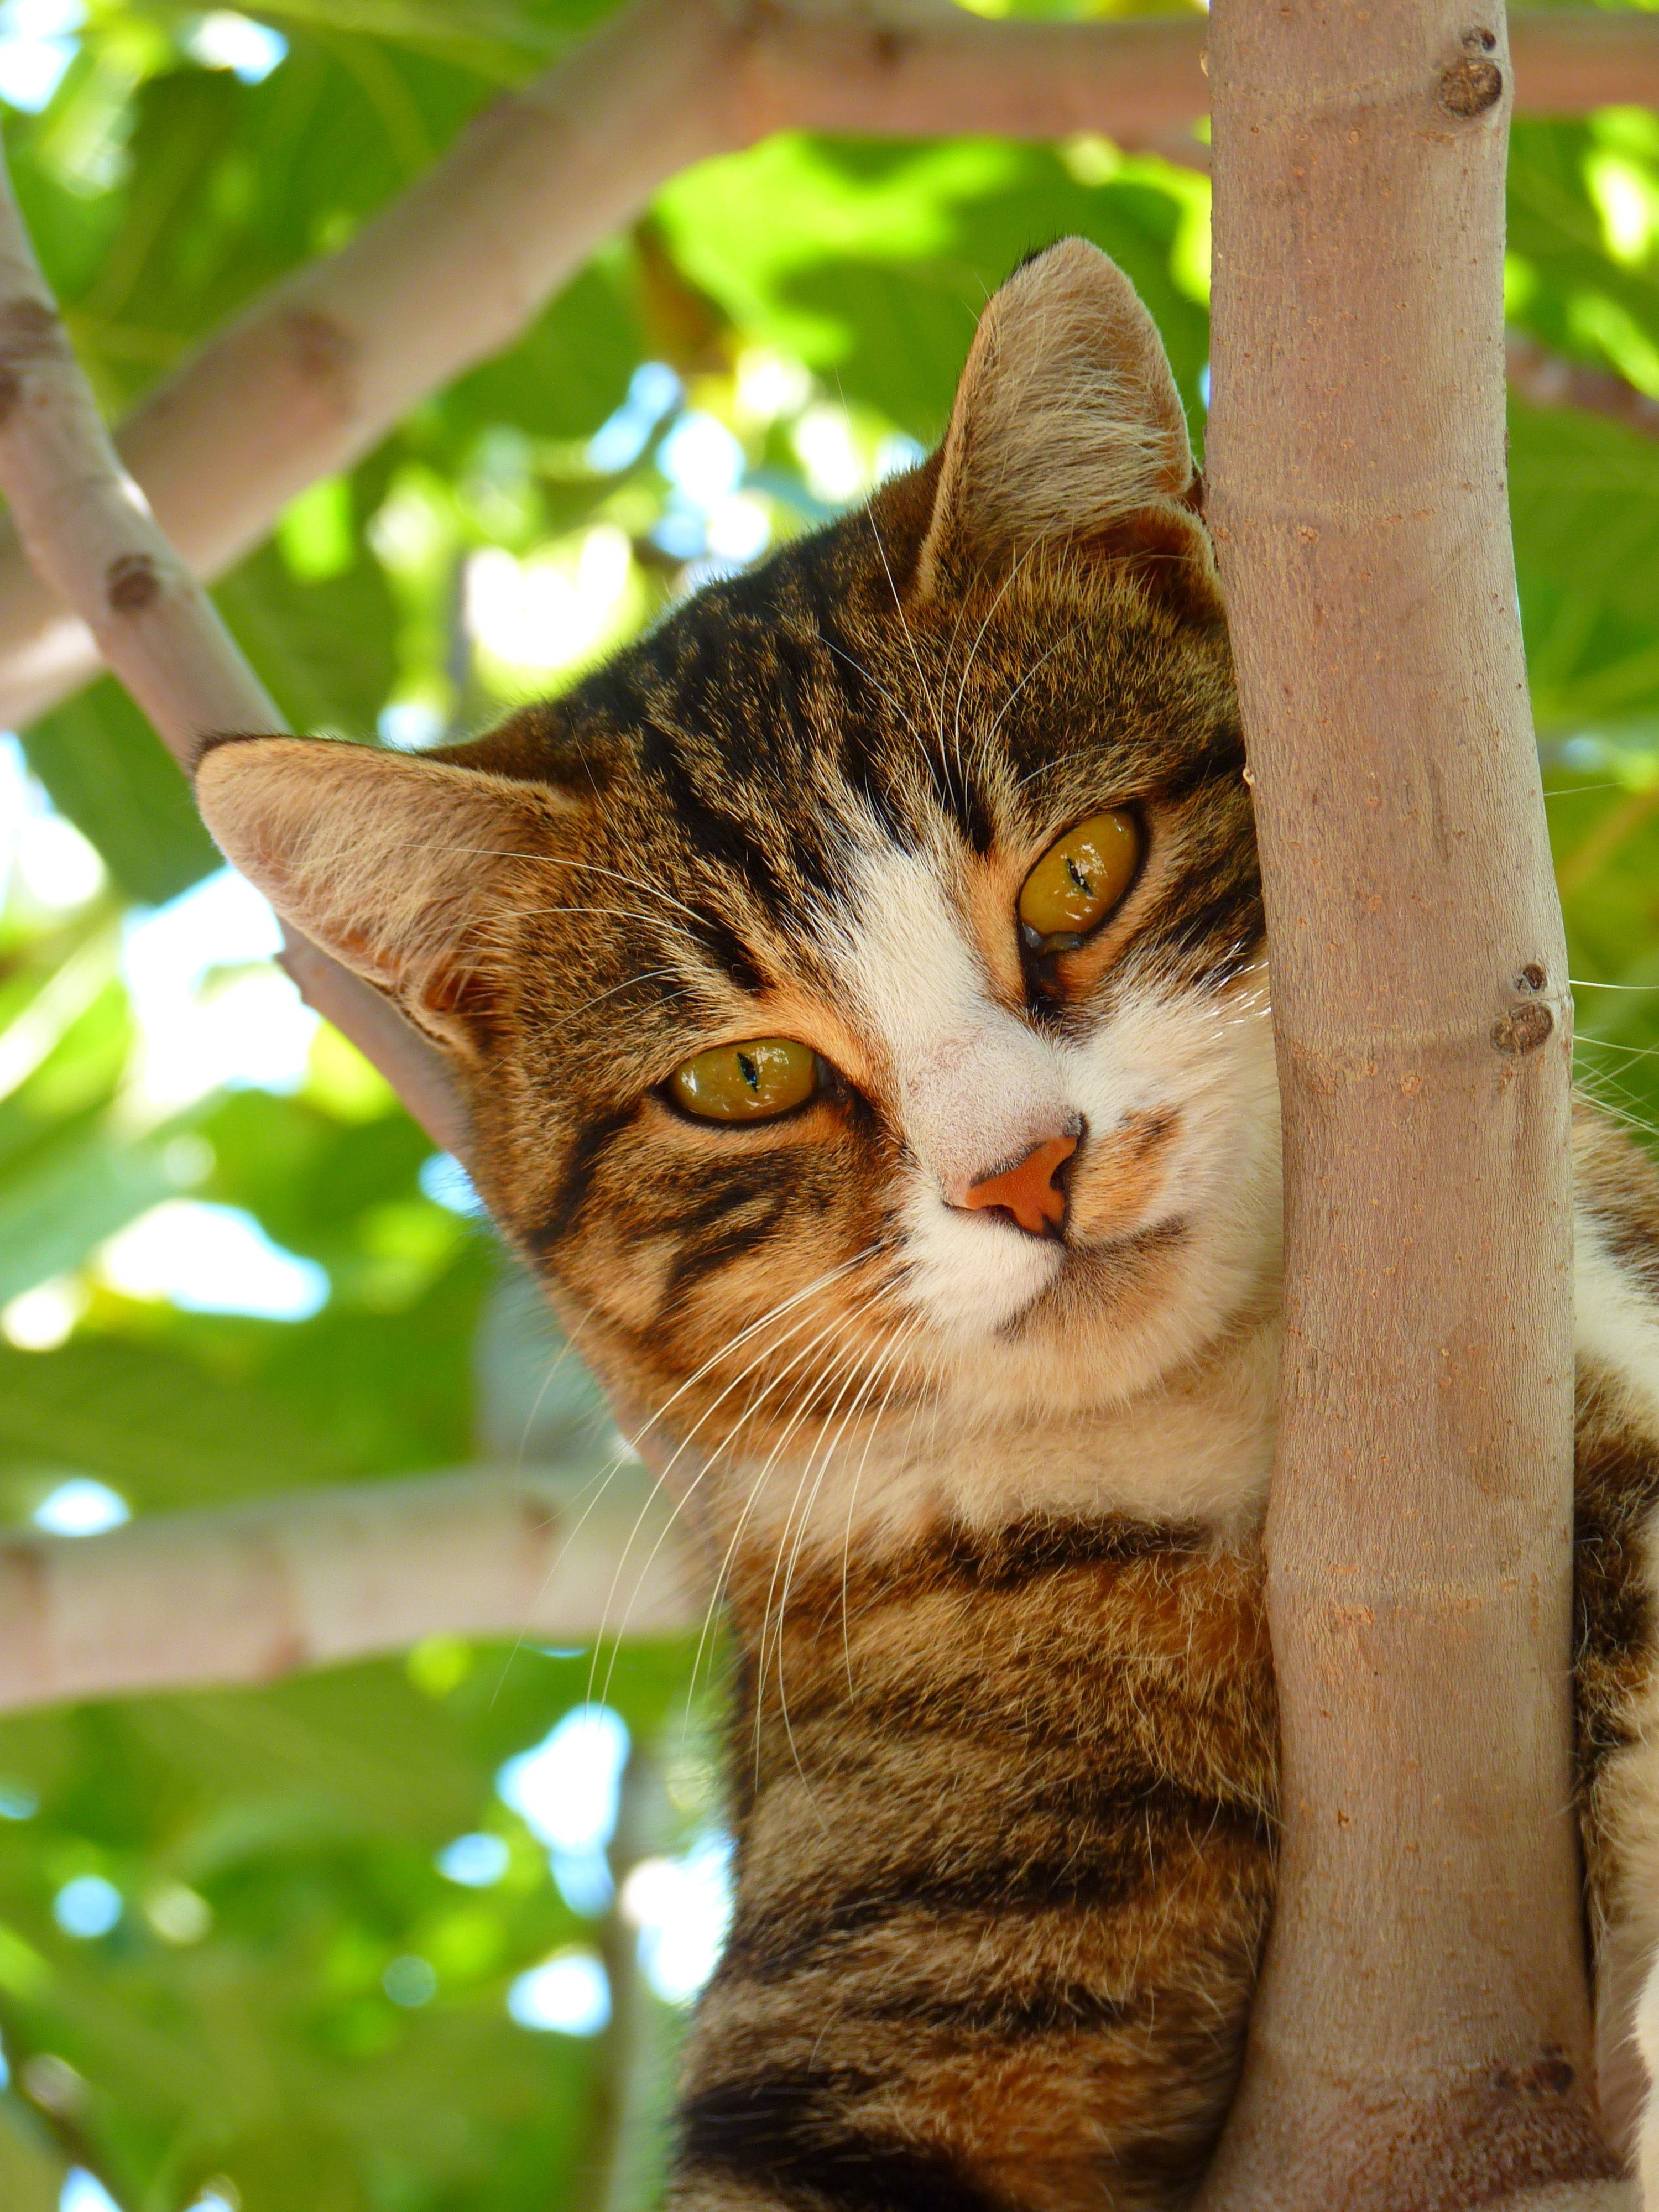 Cute Pet Animals Hd Wallpapers Cat On Tree Branch During Daytime Focus Photography 183 Free